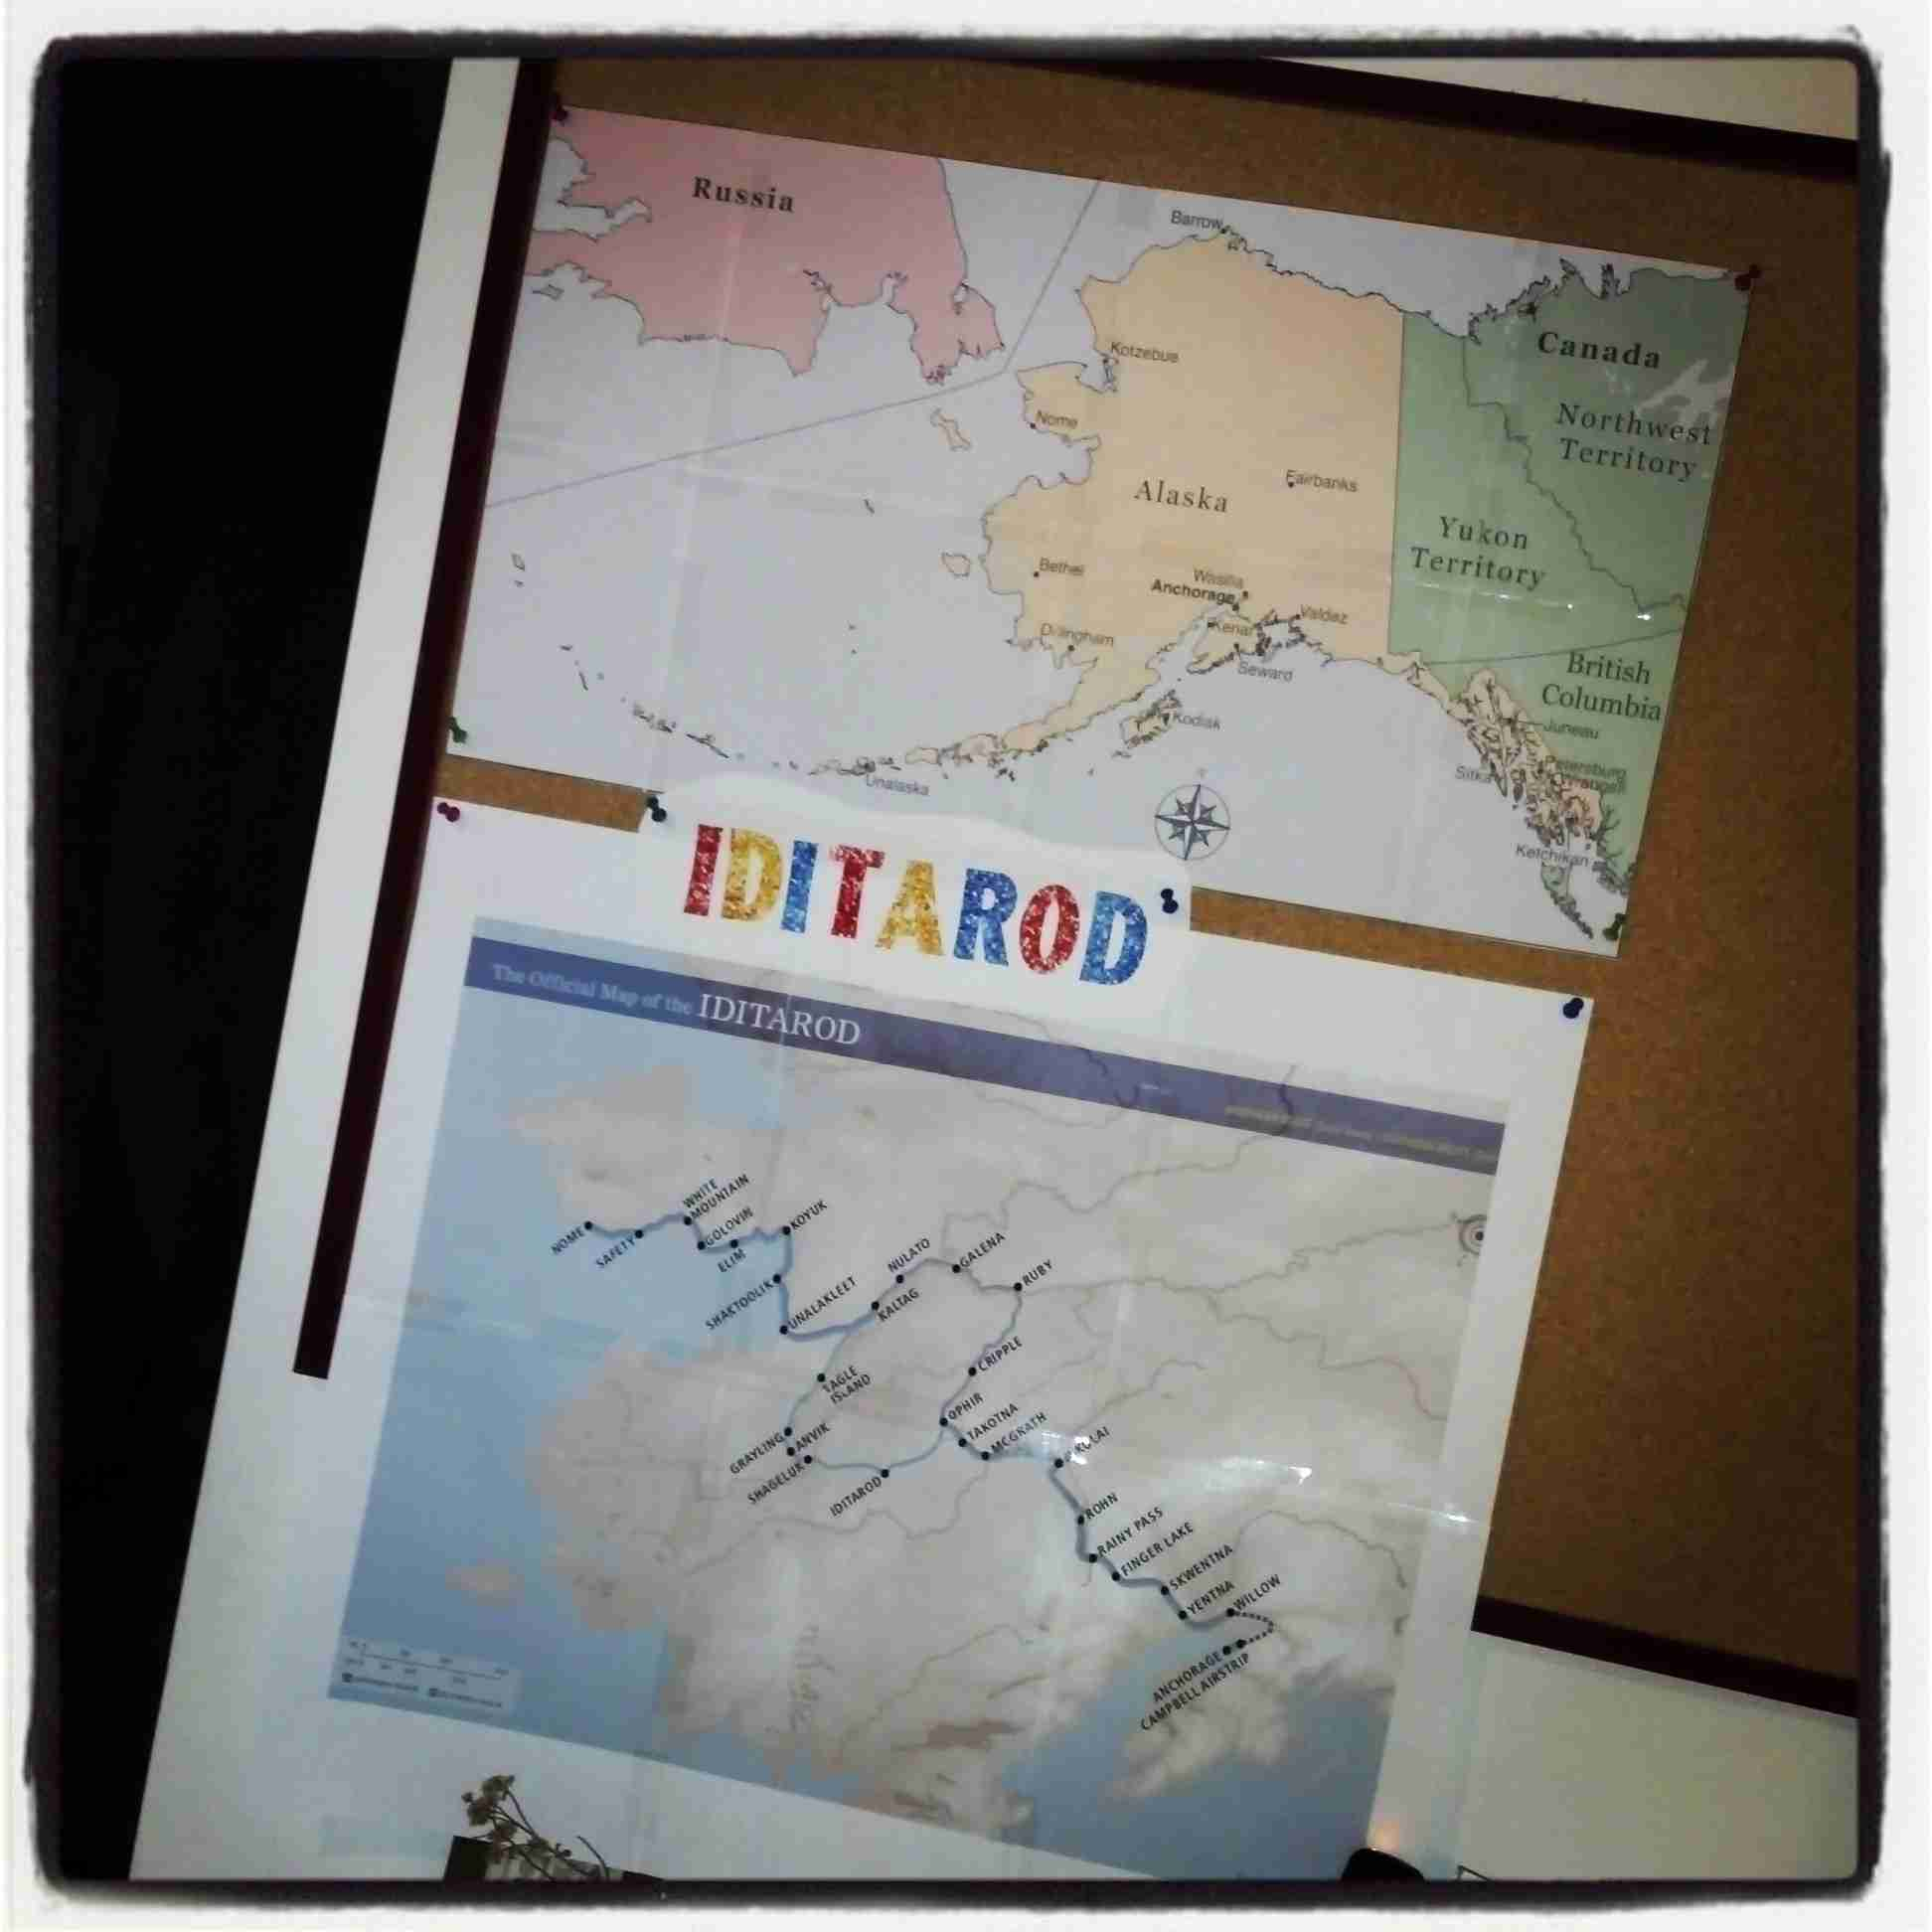 Blog, She Wrote: Geography Quest - Iditarod Edition